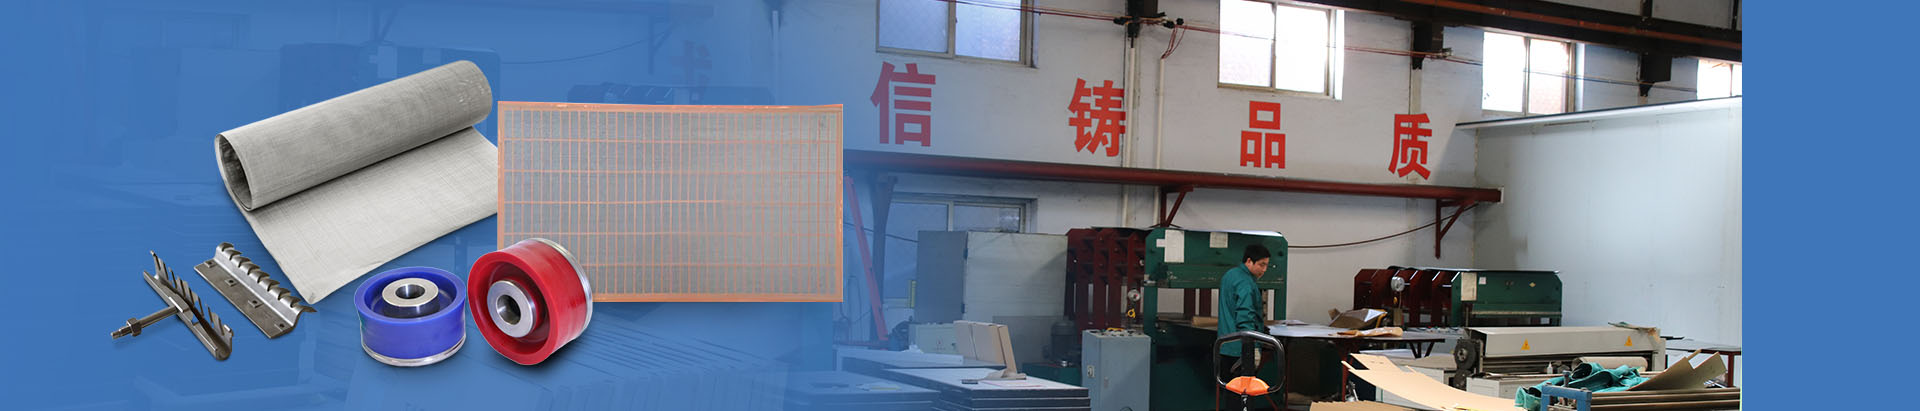 Hook Plate For 500 Series Shale Shaker